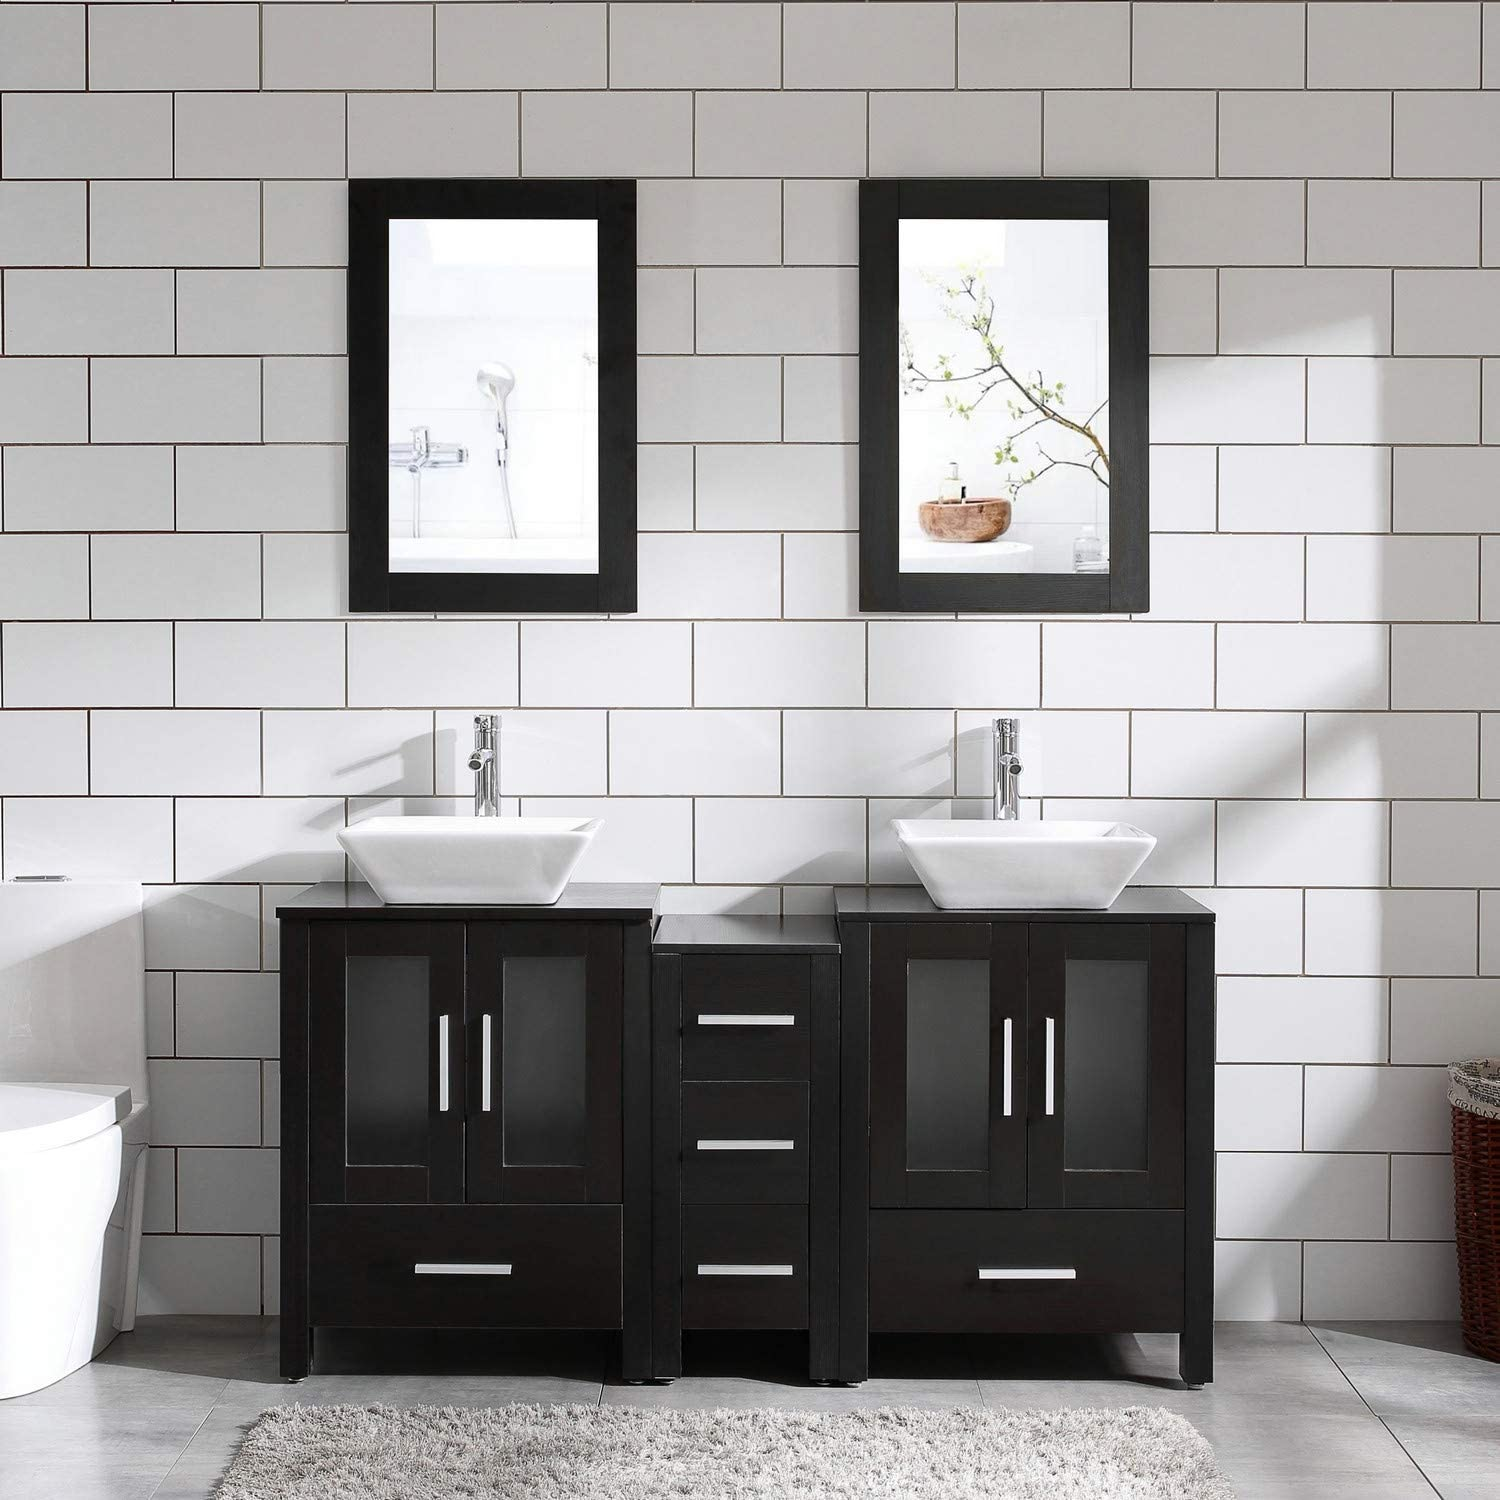 60 Bathroom Vanity Cabinet Double Top Sink Combo Black MDF Wood w Mirror Faucet and Drain